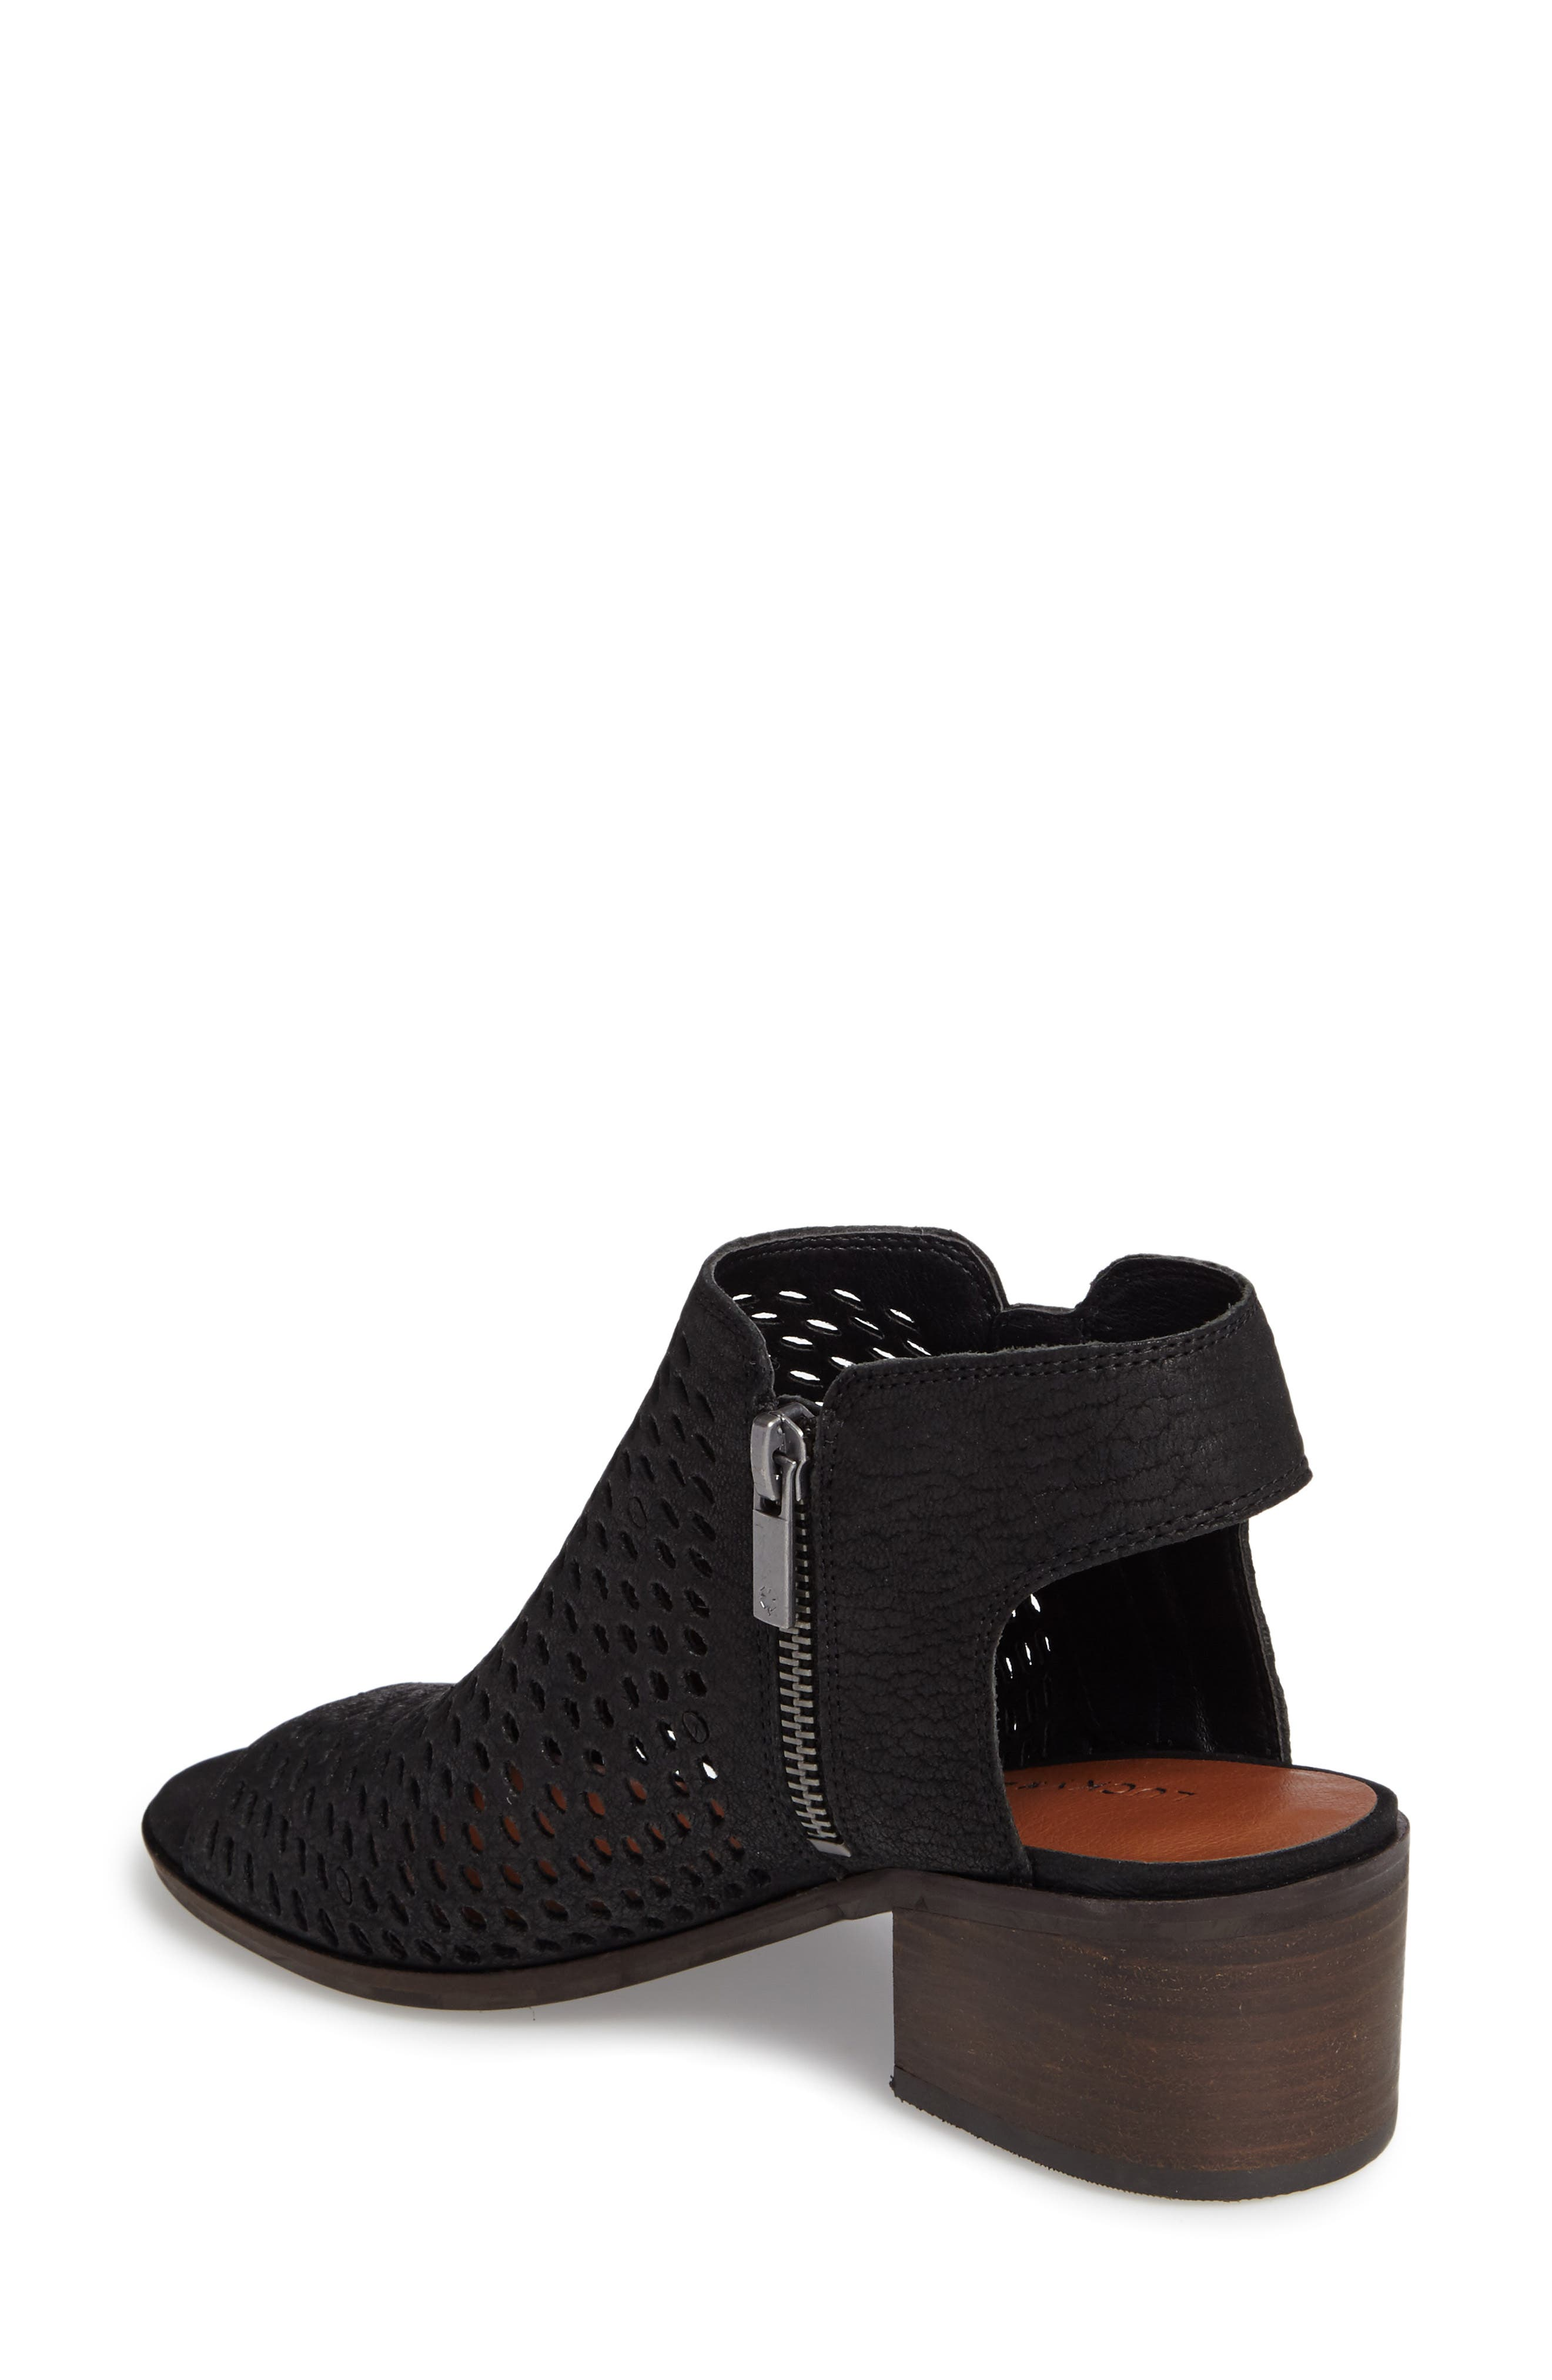 Nelwyna Perforated Bootie Sandal,                             Alternate thumbnail 2, color,                             001